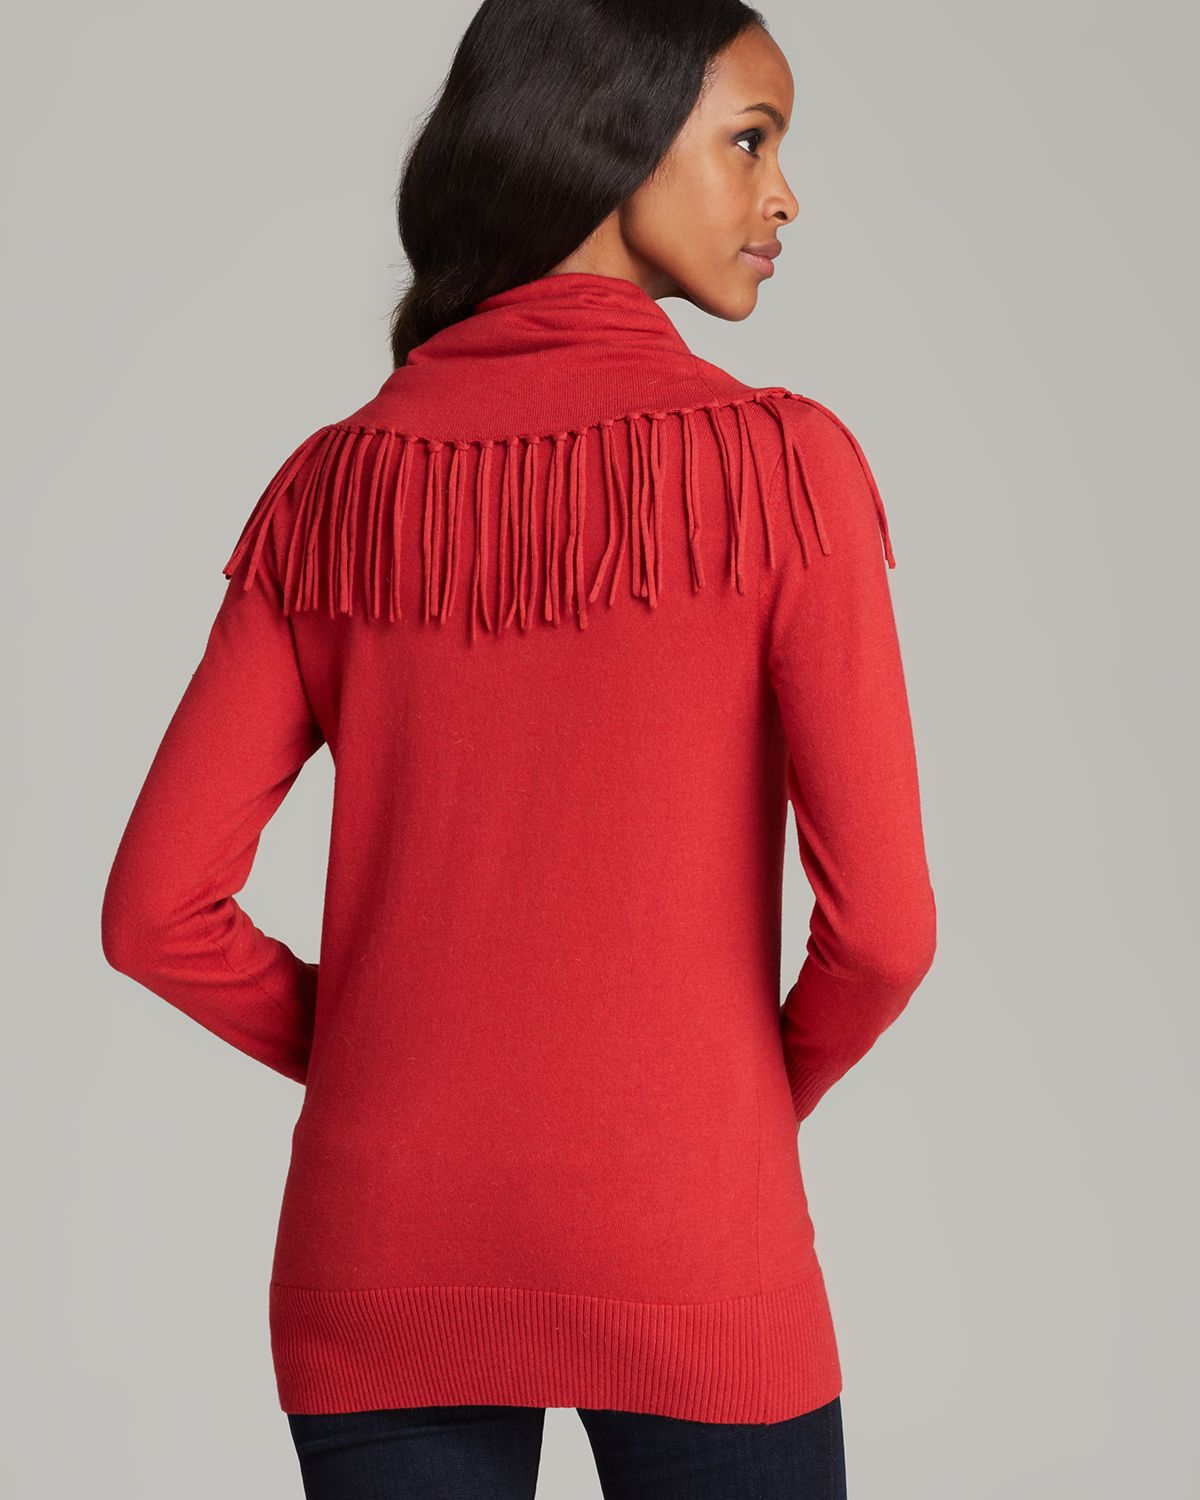 Michael michael kors Fringe Cowl Neck Sweater in Red | Lyst